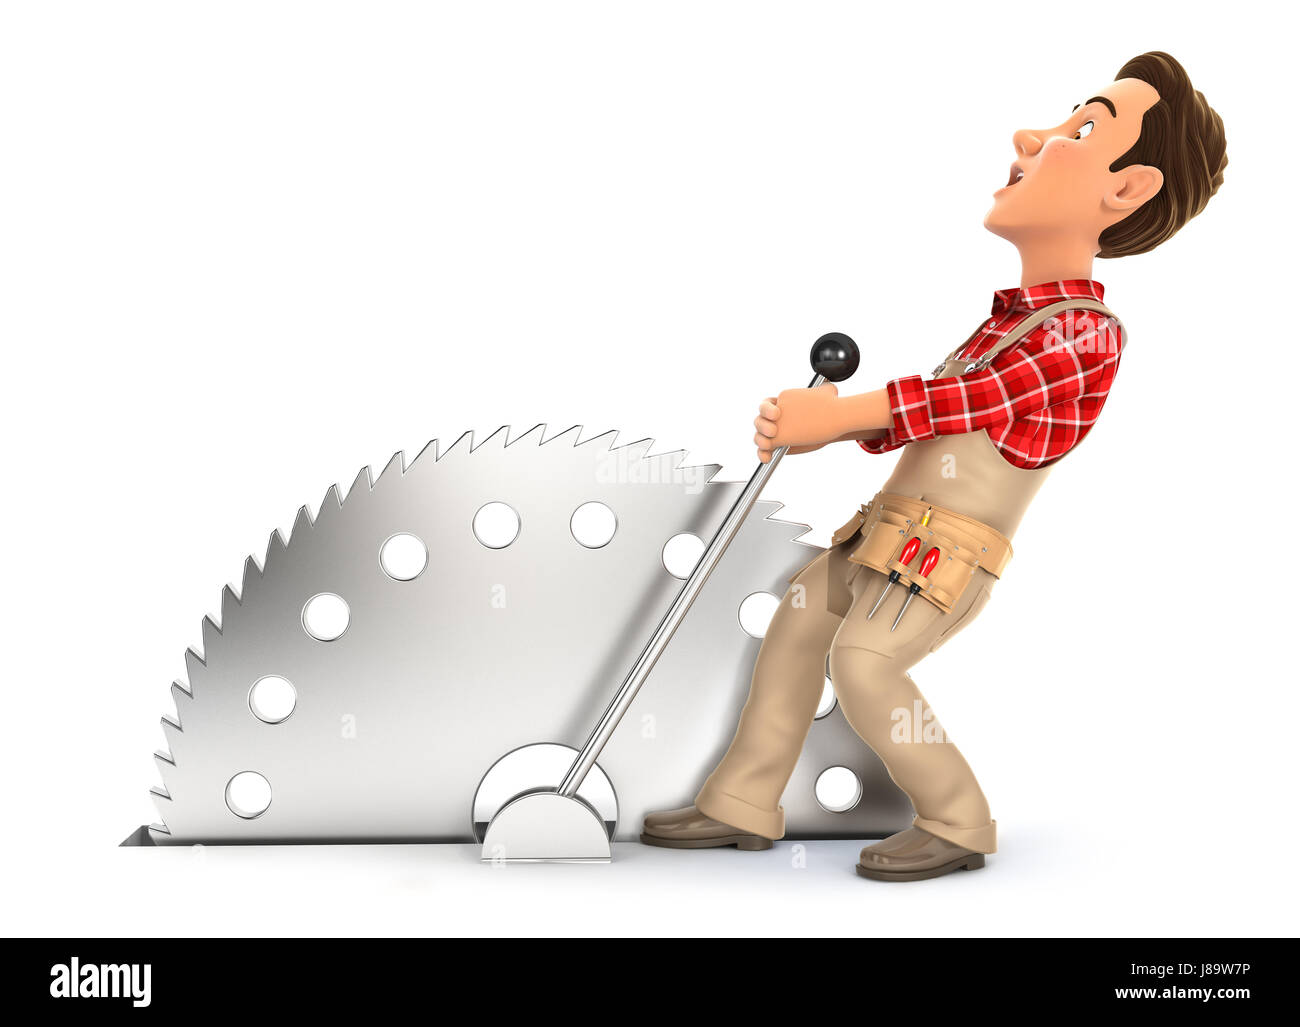 3d handyman activating circular saw, illustration with isolated white background Stock Photo